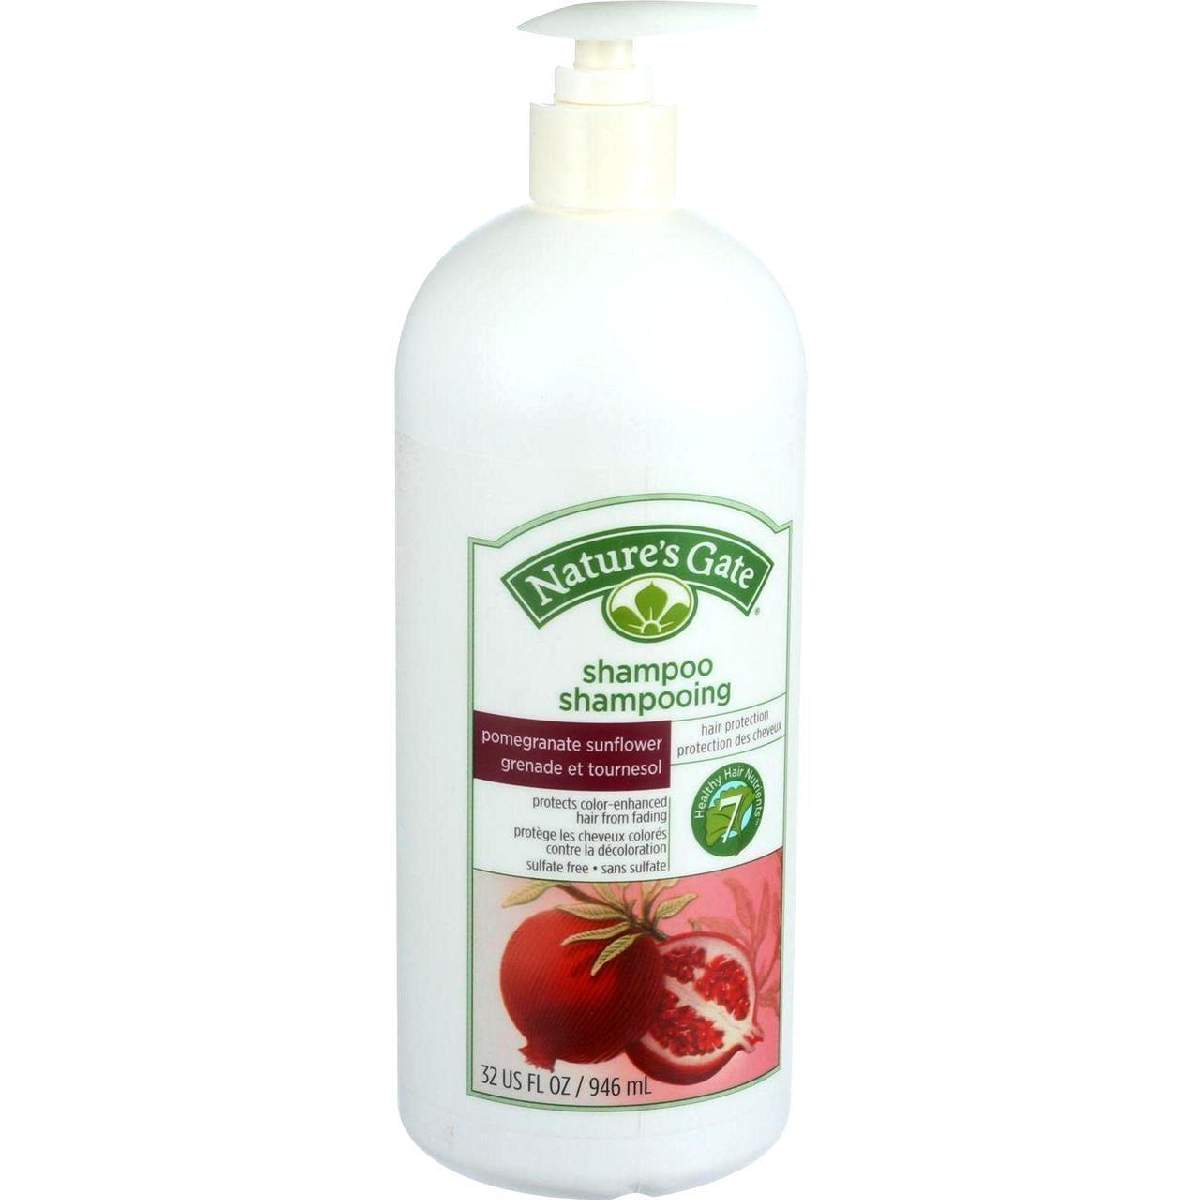 Natures Gate Shampoo - Pomegranate And Sunflower Hair Defense - 32 Oz